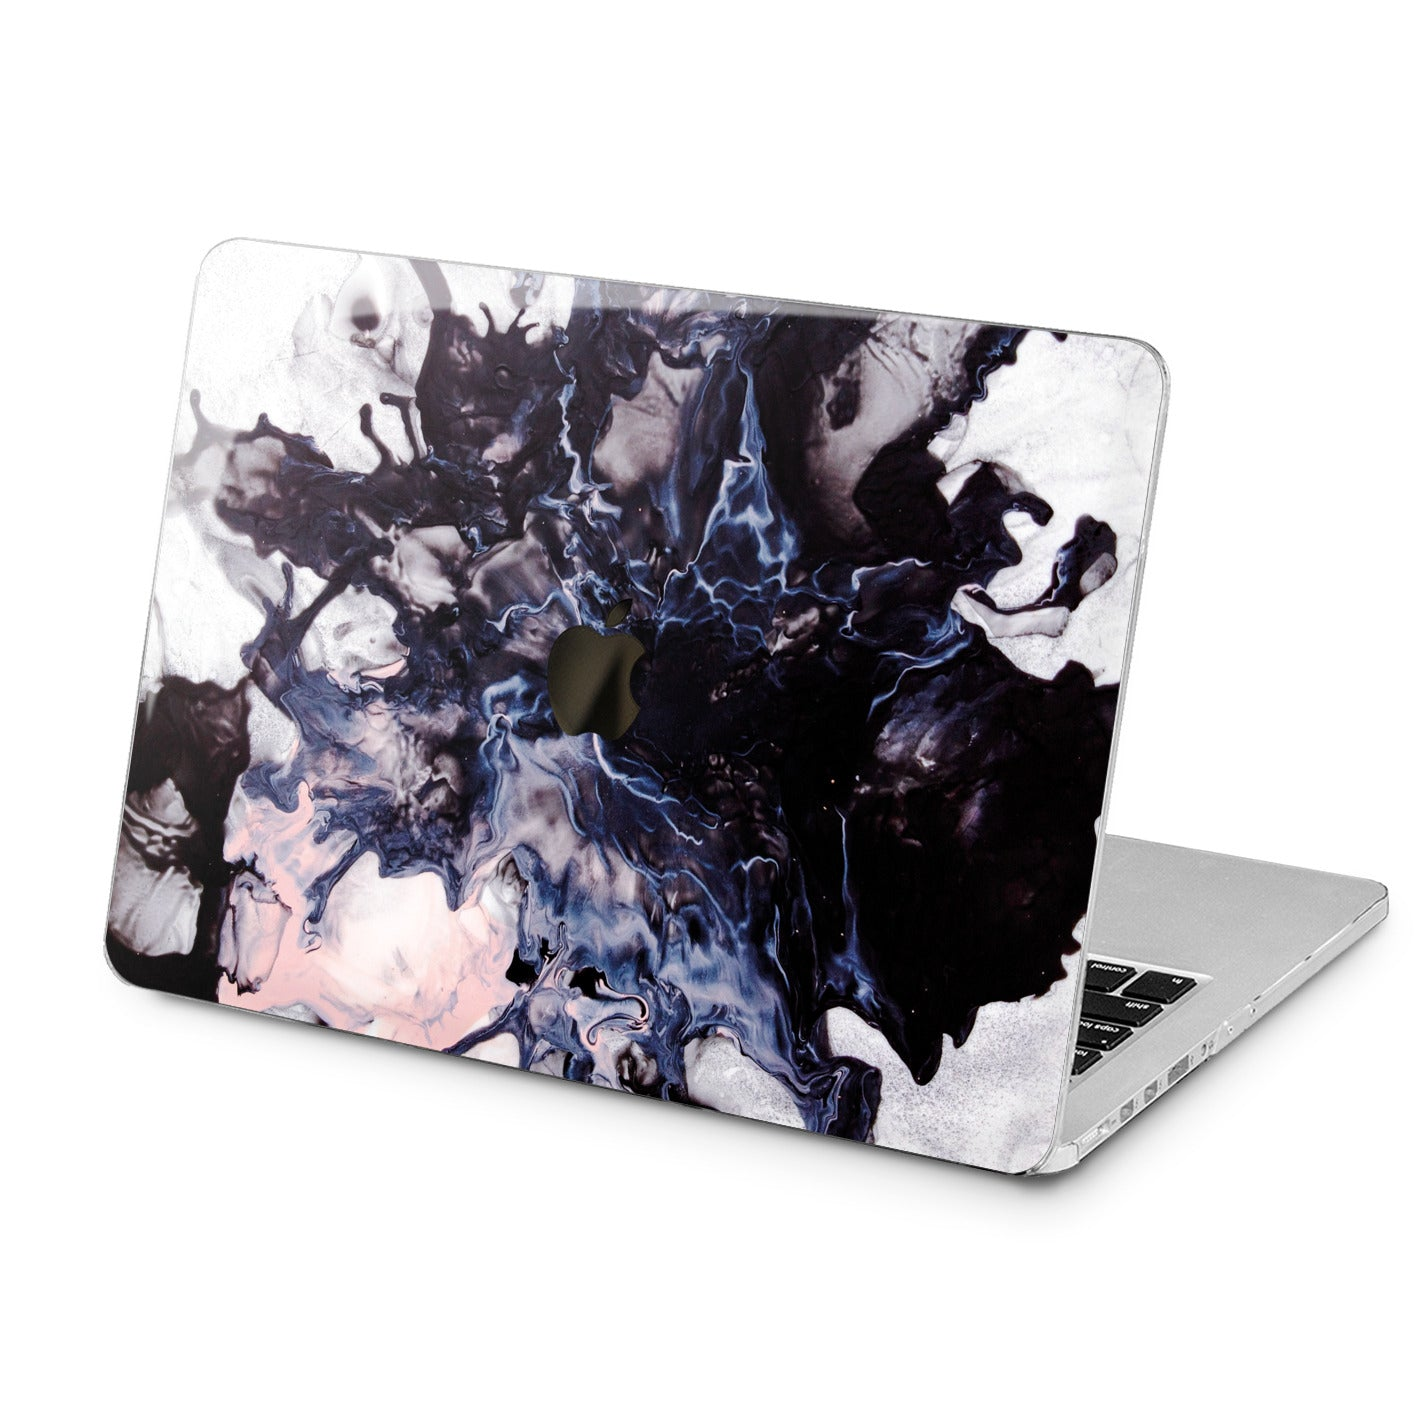 Lex Altern Lex Altern Inked Drawing Case for your Laptop Apple Macbook.